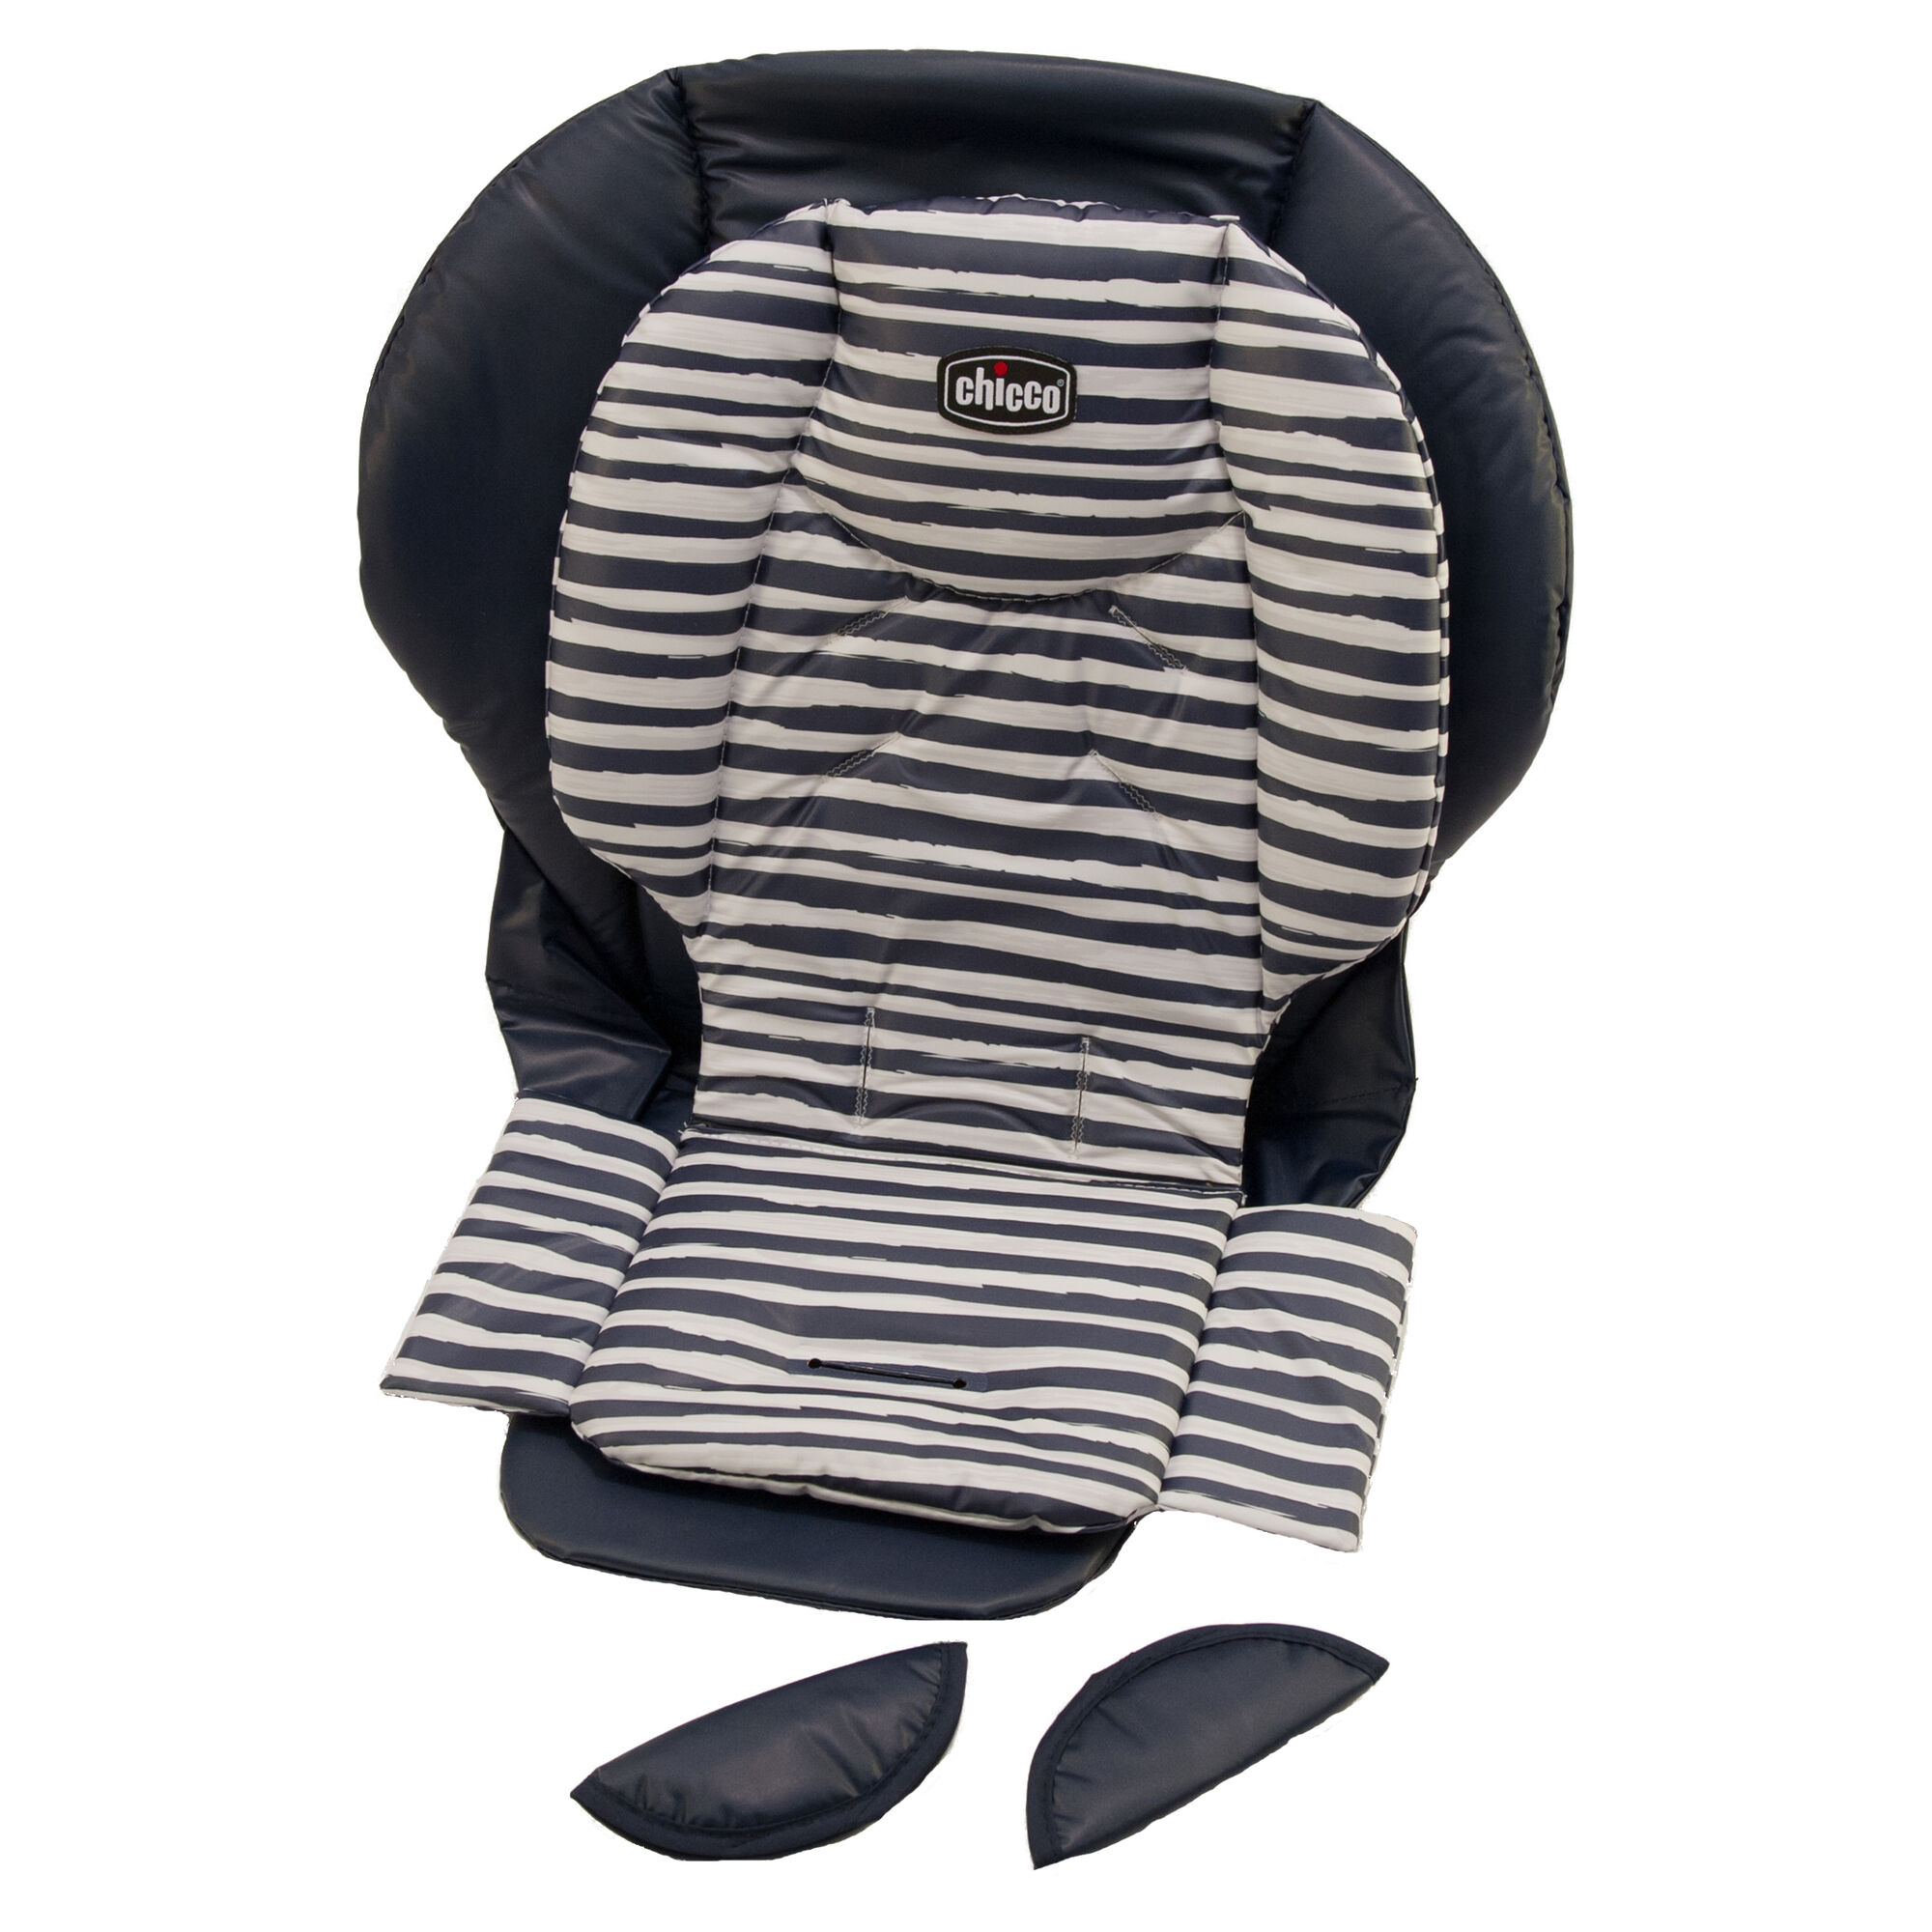 Replacement Seat Cushion Cover And Shoulder Pads For Chicco Polly 2017 Highchair